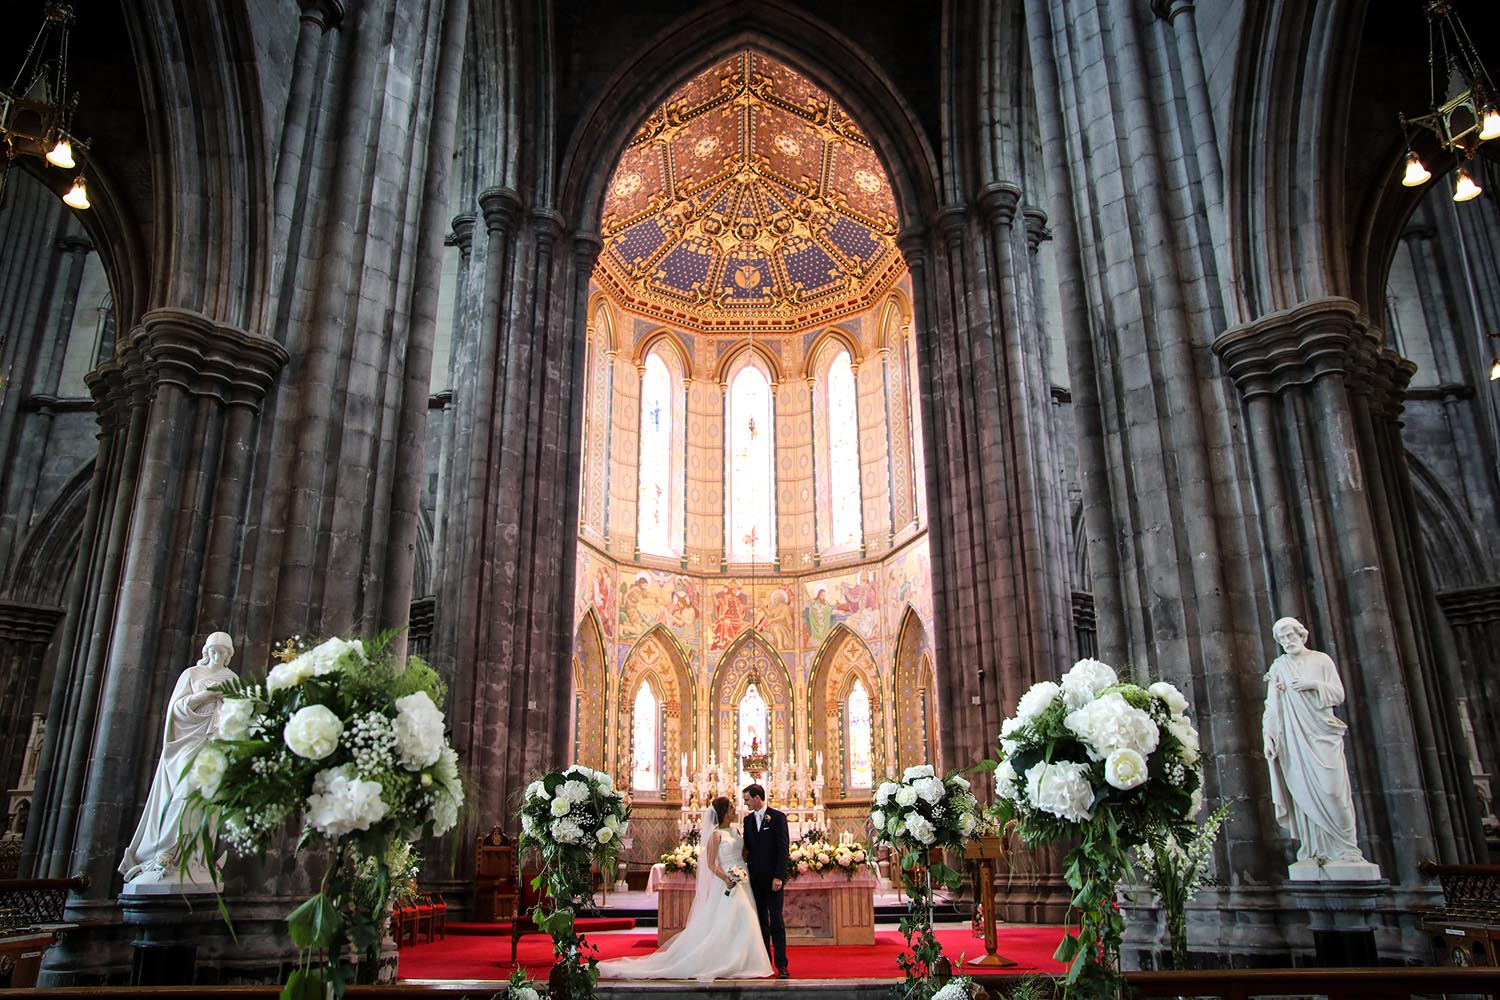 Newly married couple of the alter at Kilkenny Cathedral